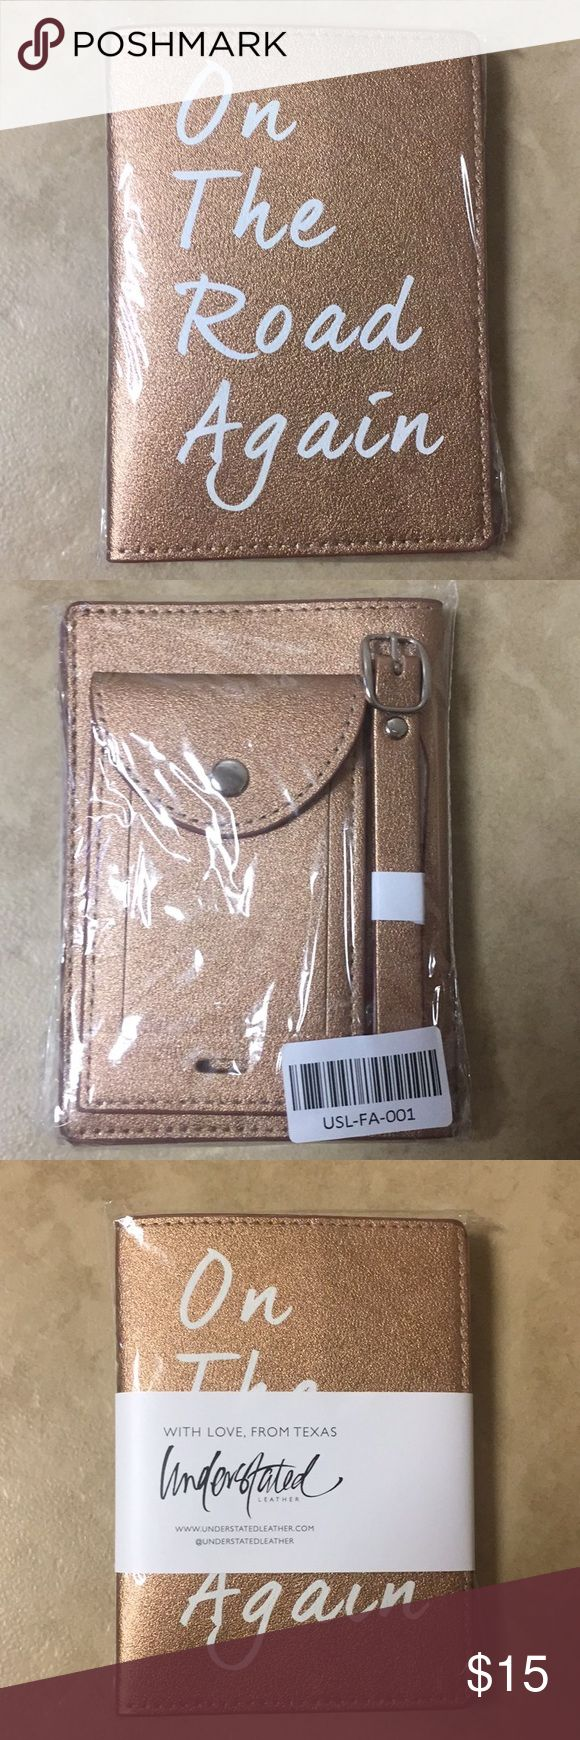 """Understated Leather Passport Cover & Luggage Tag Brand new, still in plastic passport cover & luggage tag. Beautiful metallic rose gold color. Luggage tag says, """"Hands off."""" Sold out online! Understated Leather Other"""